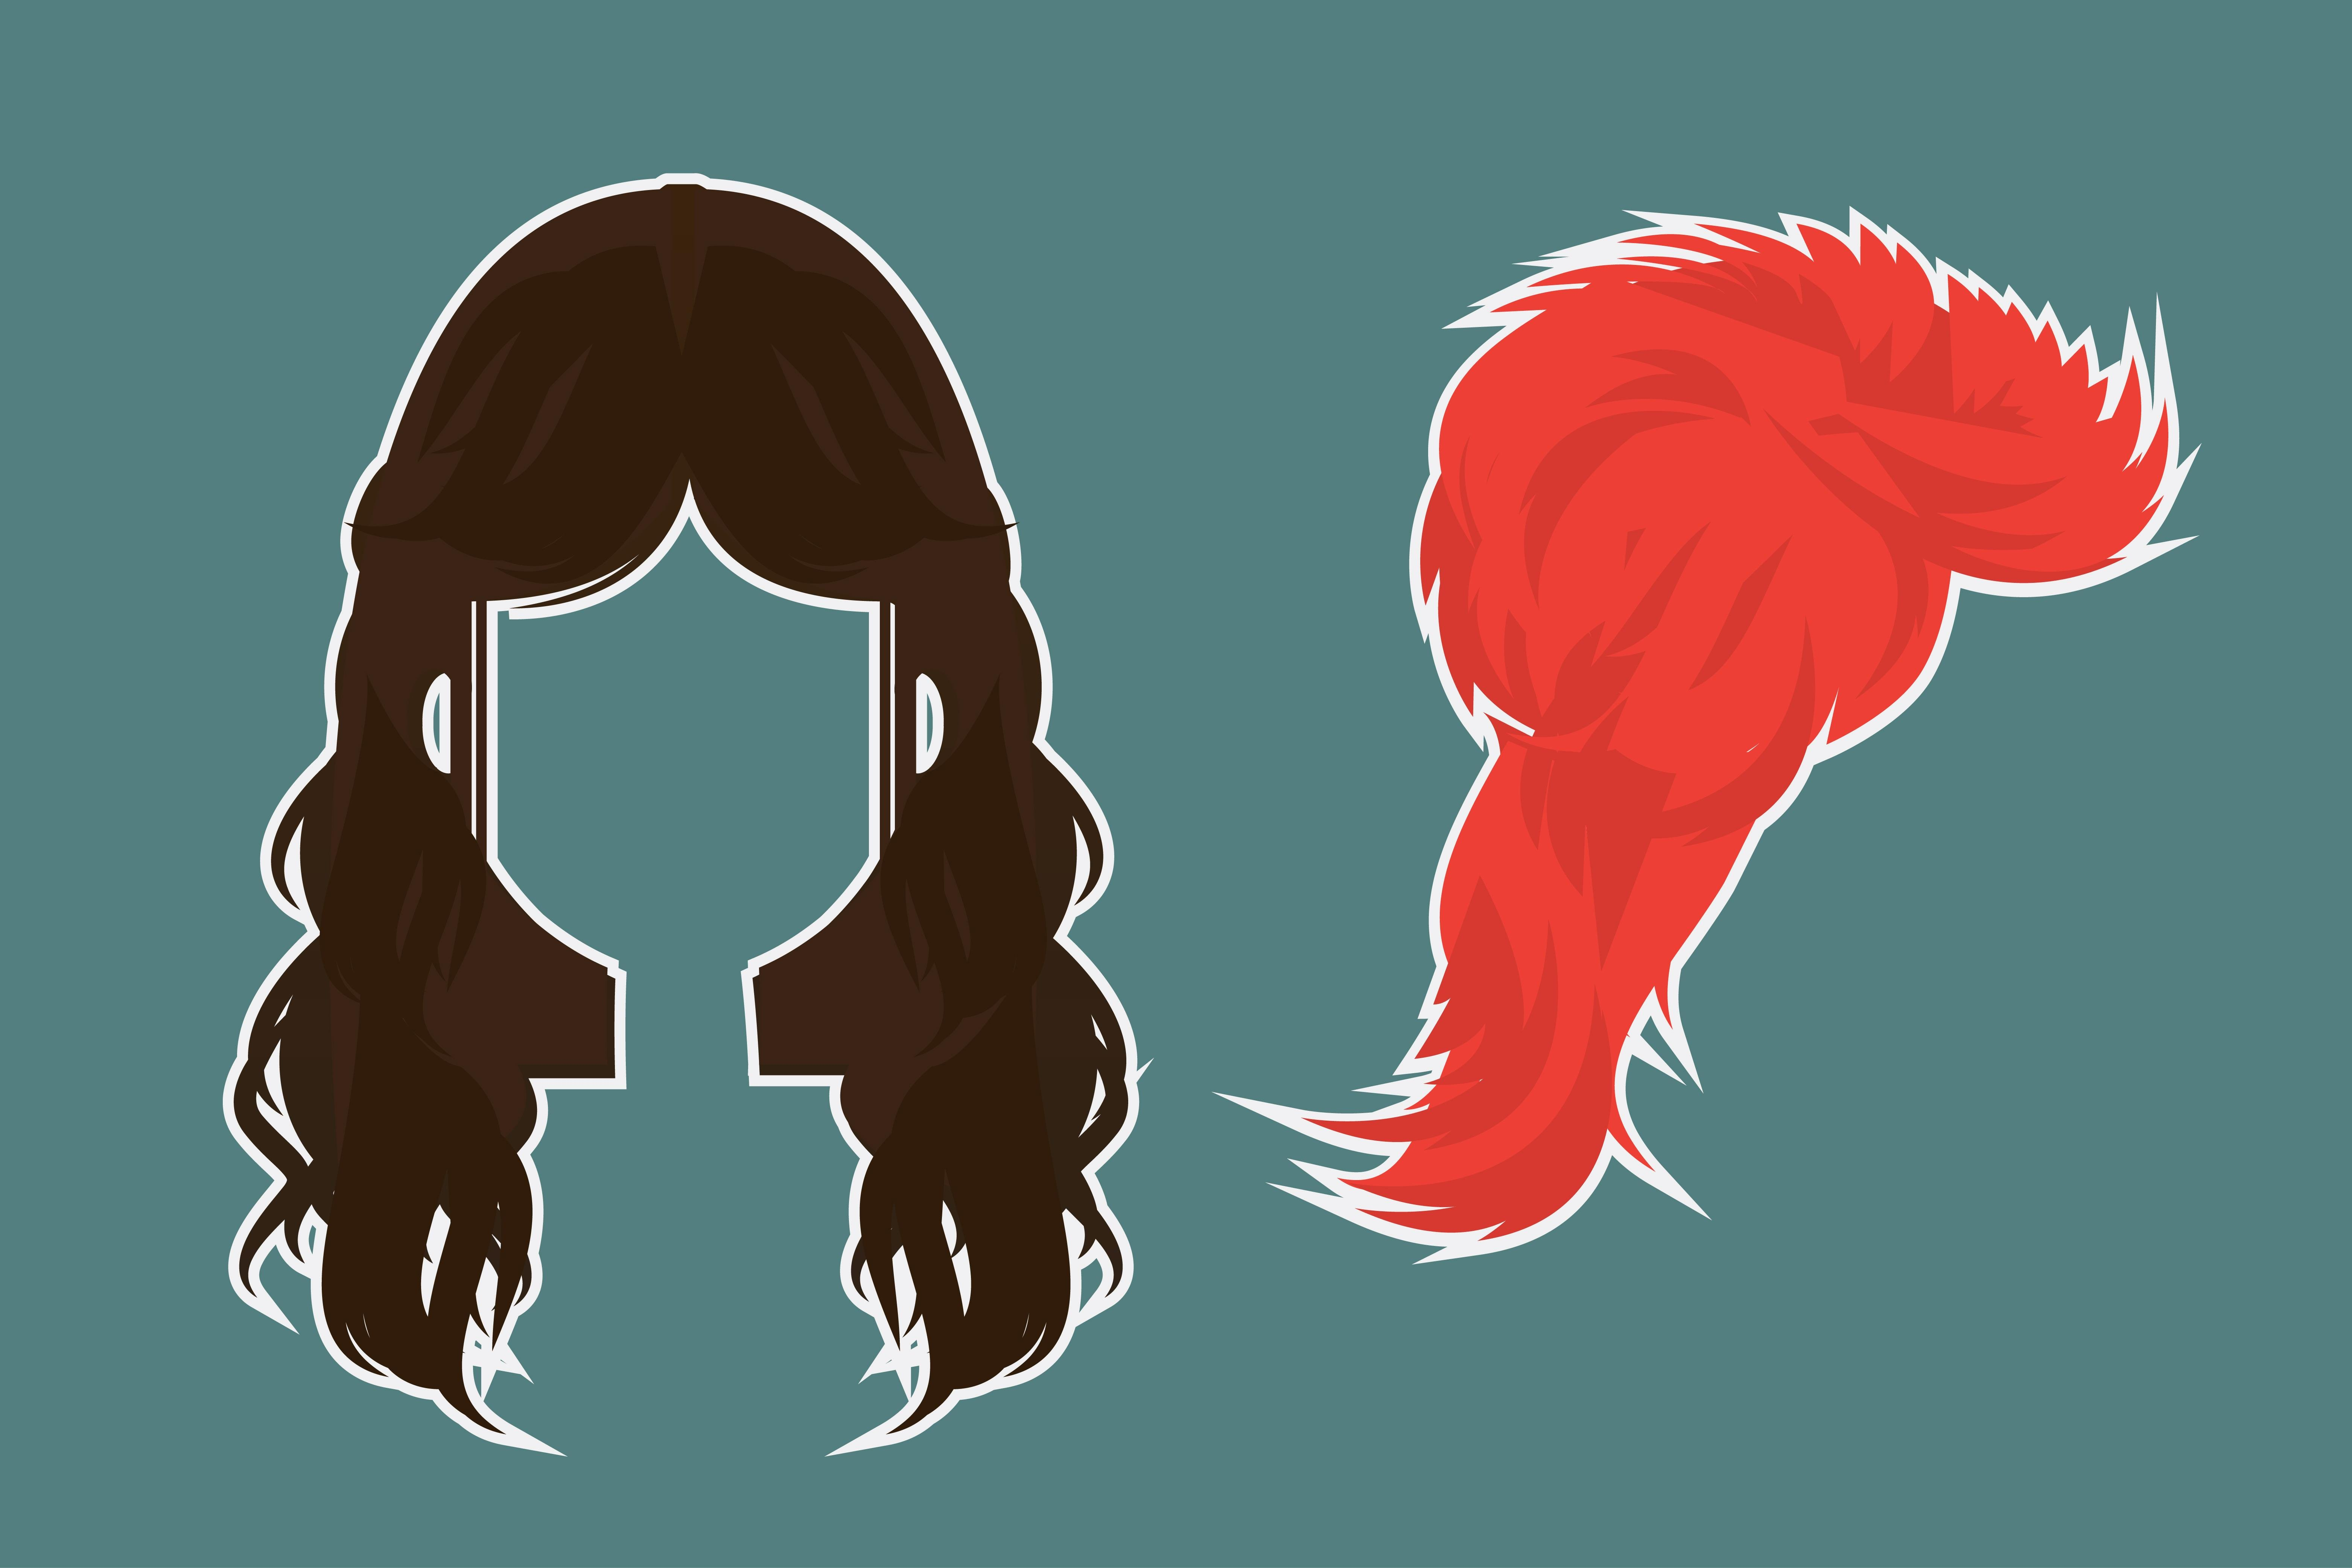 Illustrated evolution of rock n roll hairstyles +list+.